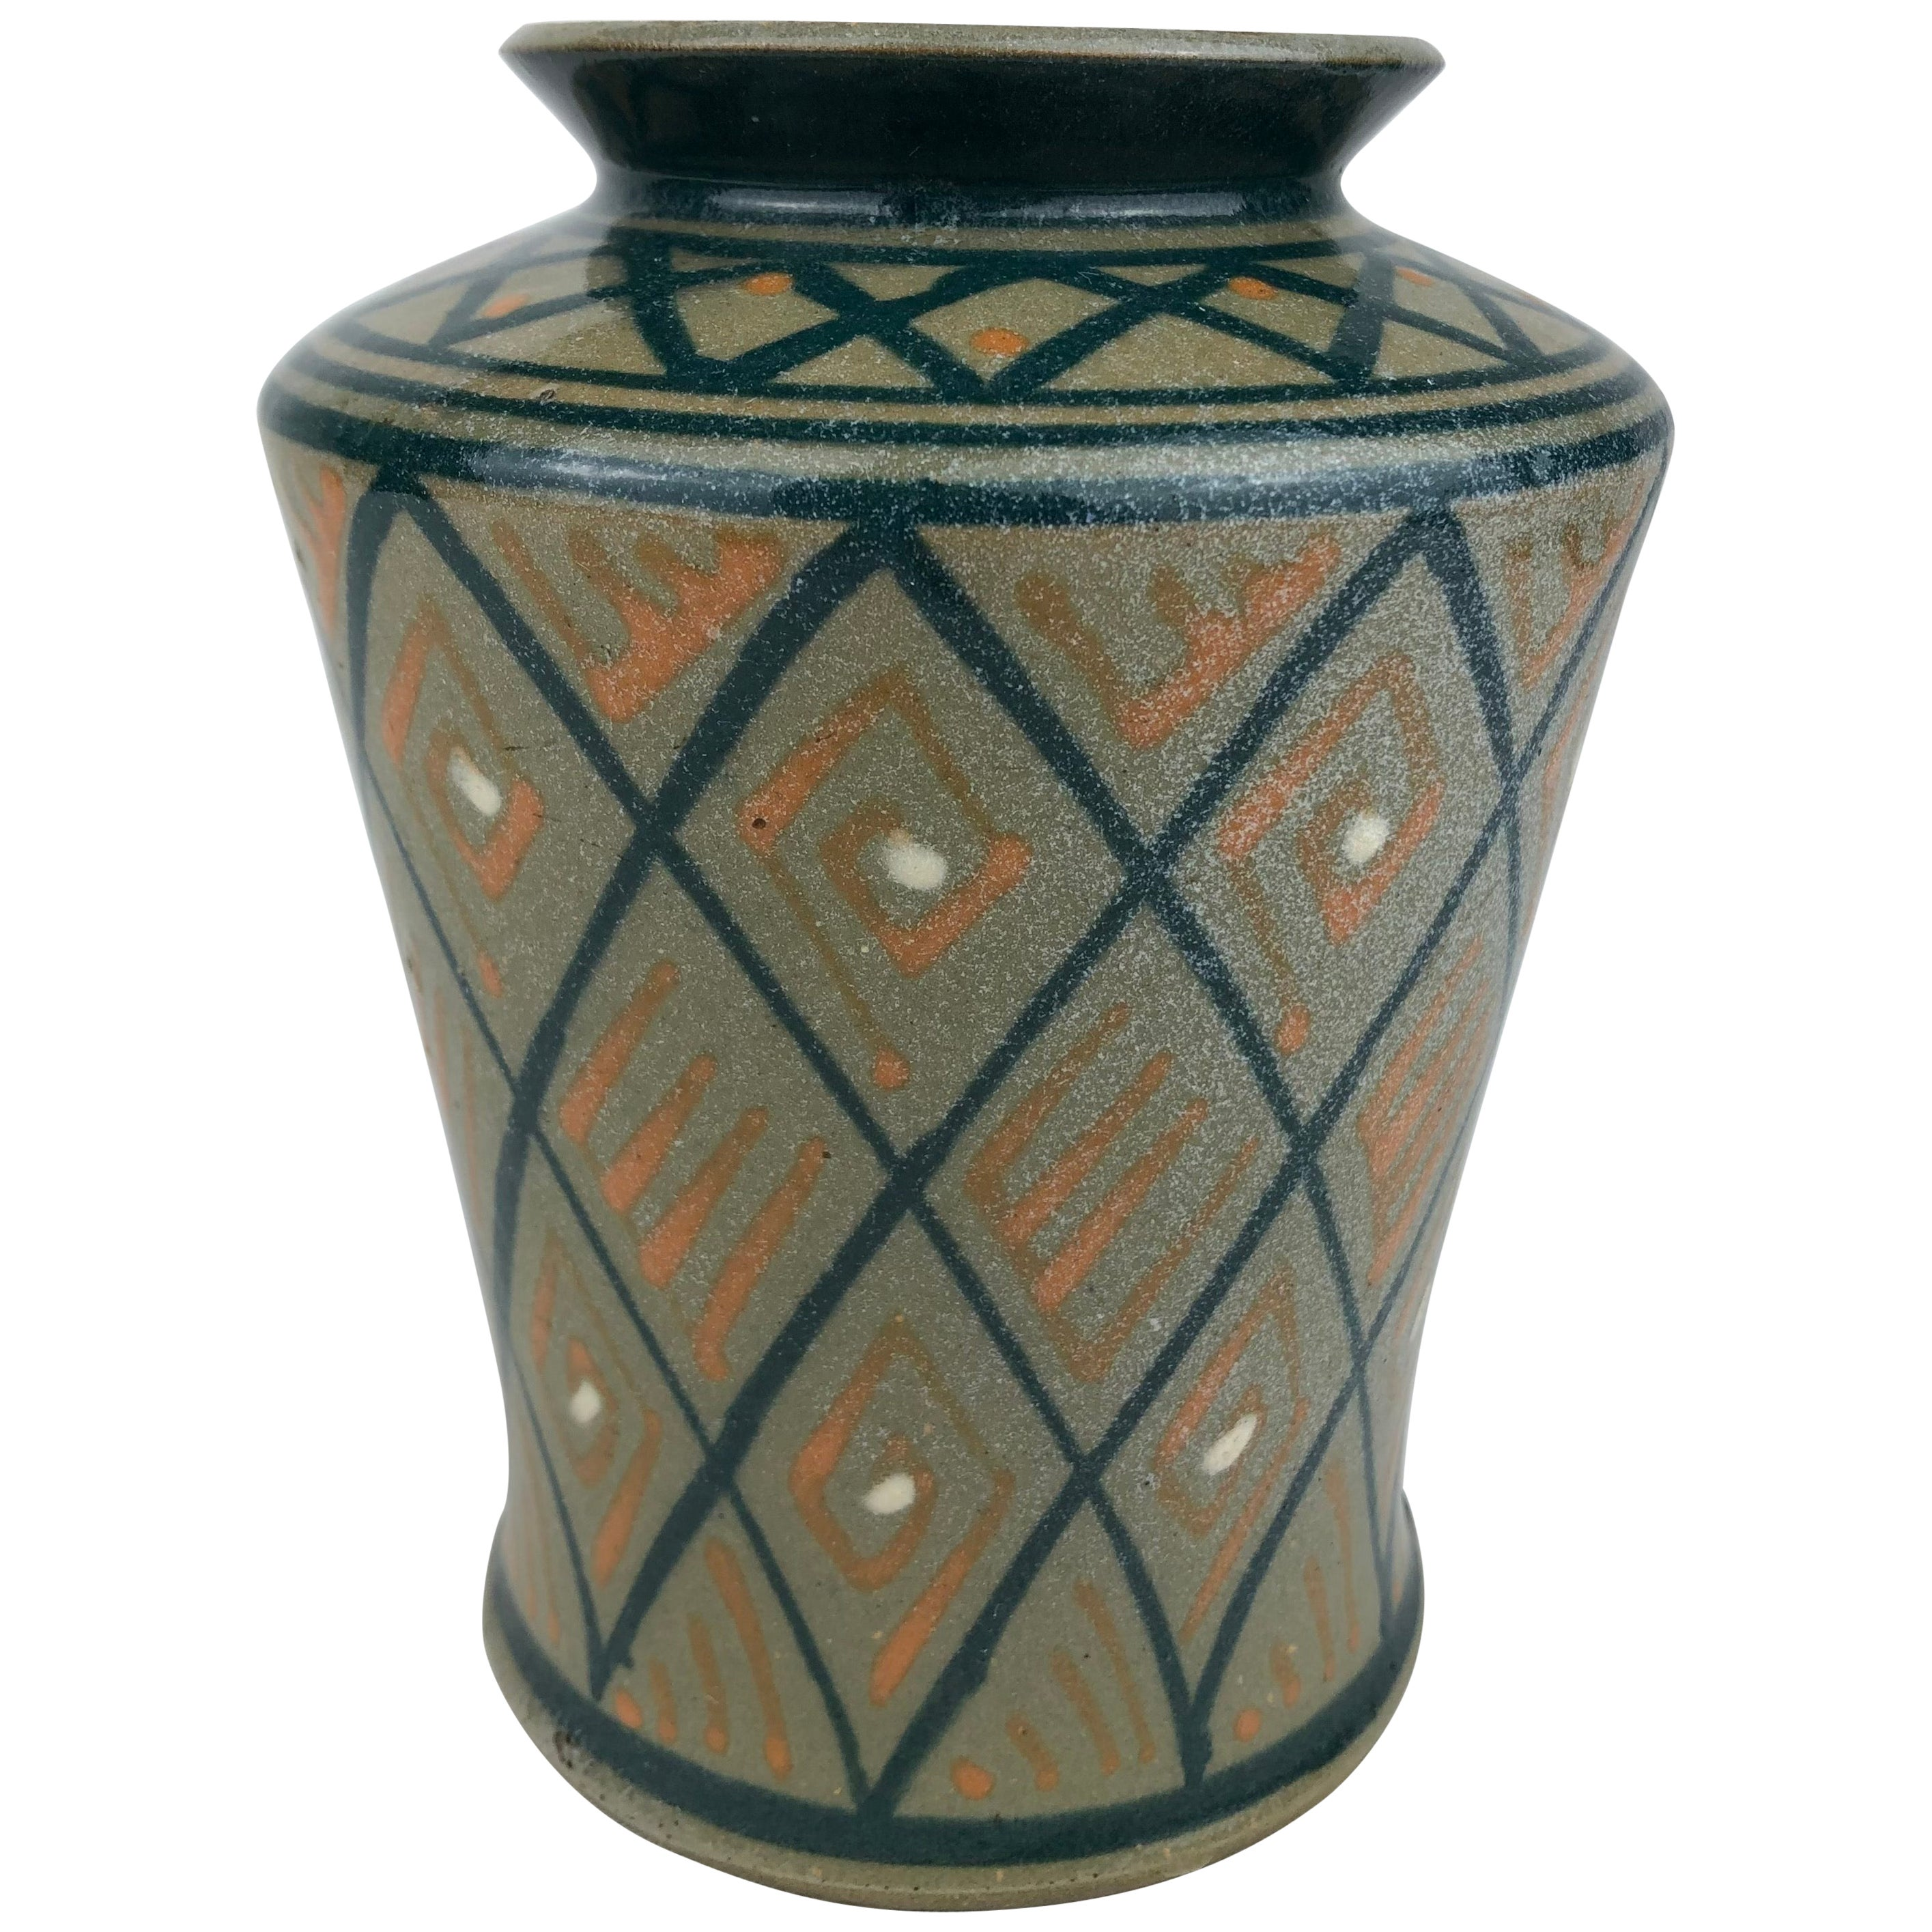 French Art Deco Ceramic Vase or Small Planter